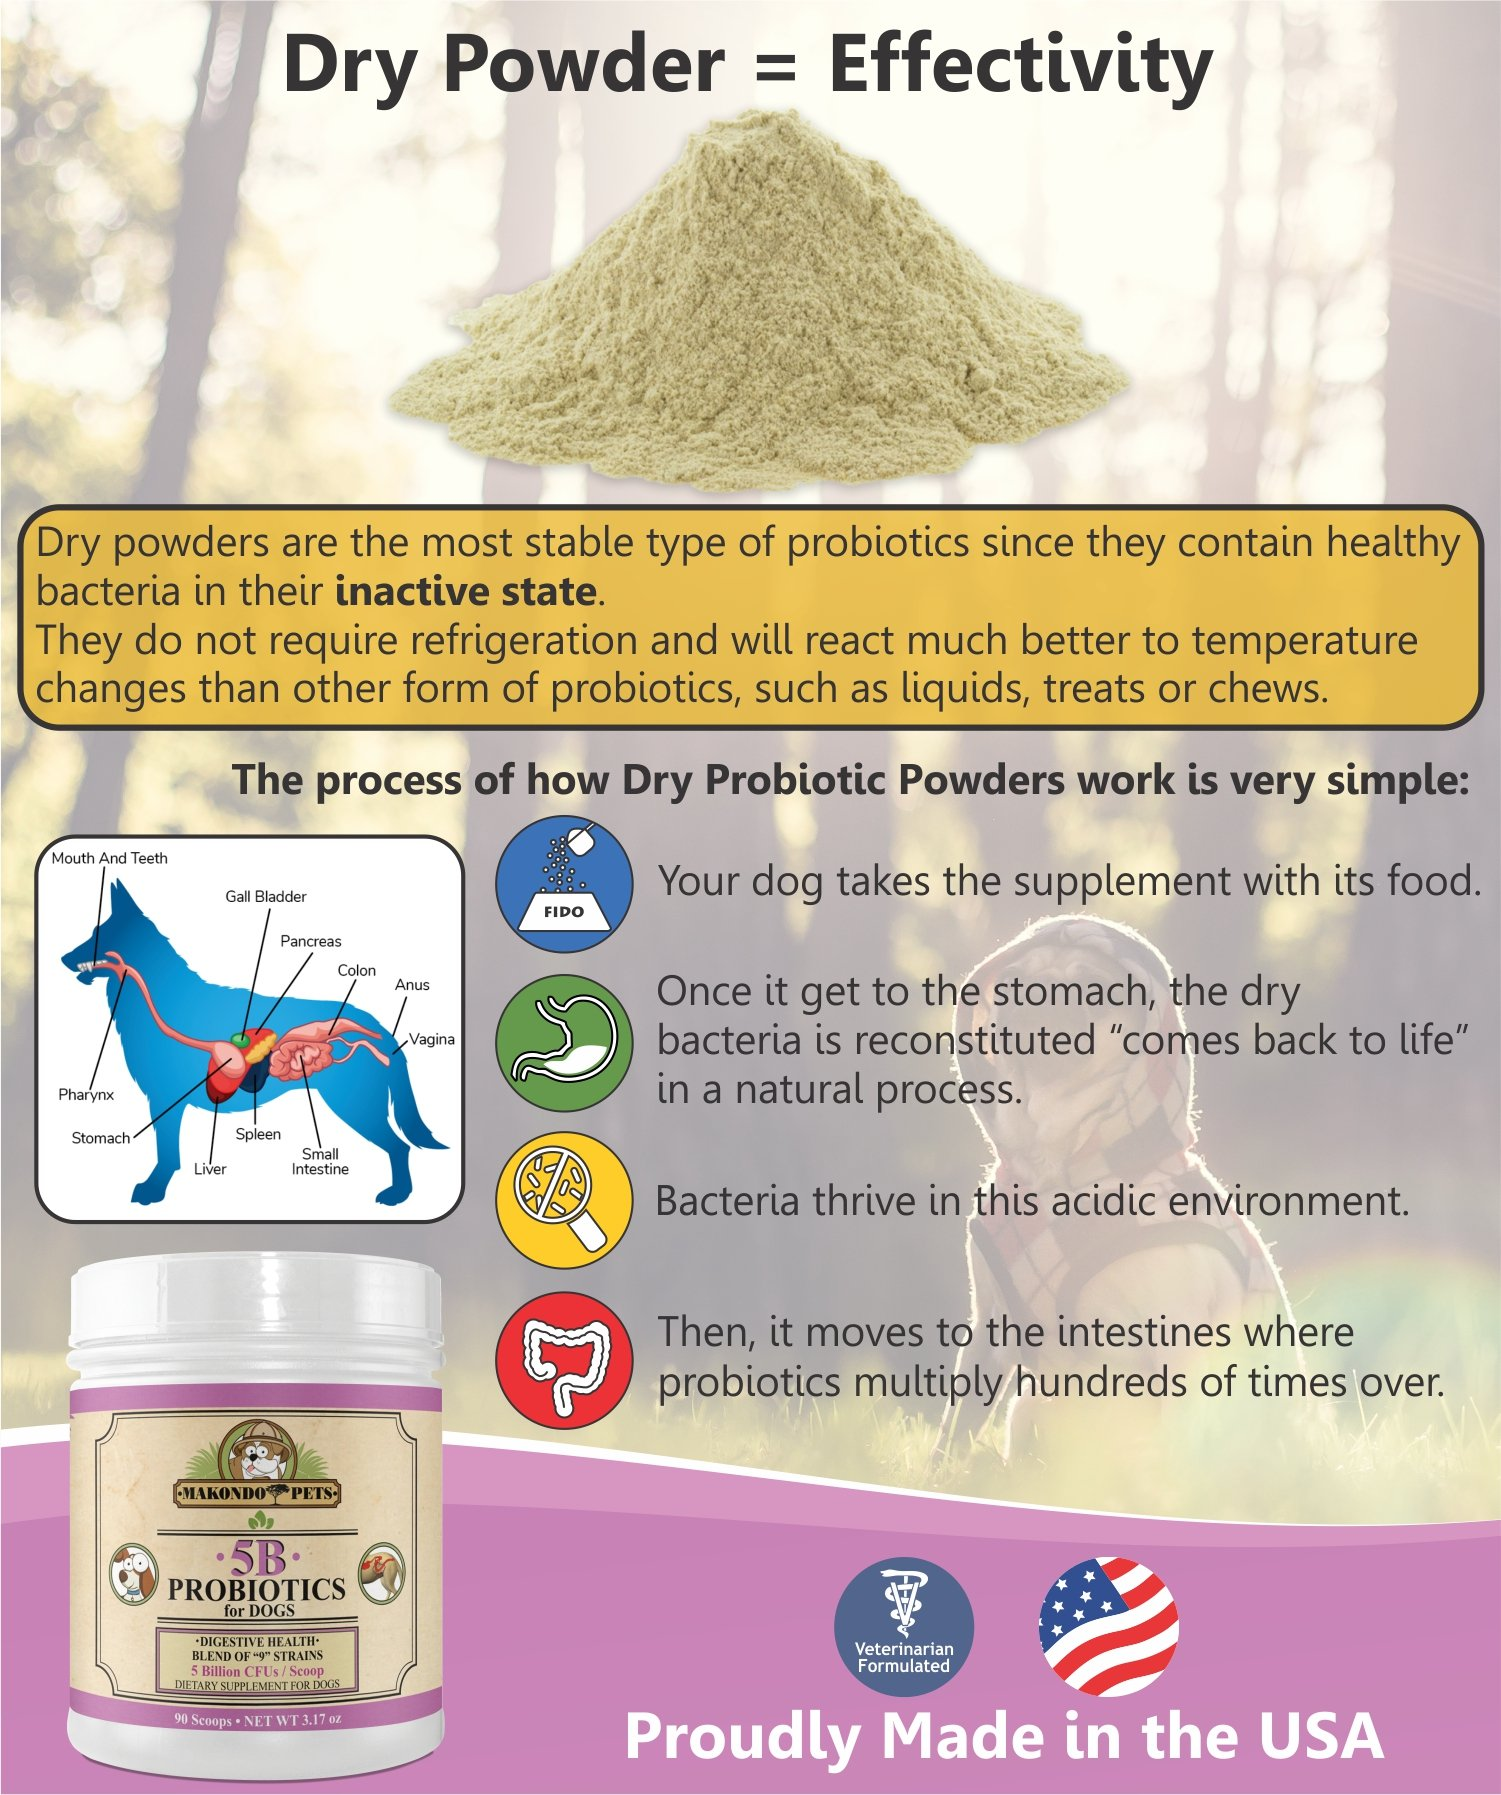 Makondo Pets Probiotics for Dogs & Puppies – Flavored, Made in USA, Extra Strength 9 Species Digestive Support Tummy Relief Enzyme Powder, 5 Billion CFUs per Scoop – 90 Scoops per Tub, 3.17 oz by Makondo Pets (Image #5)